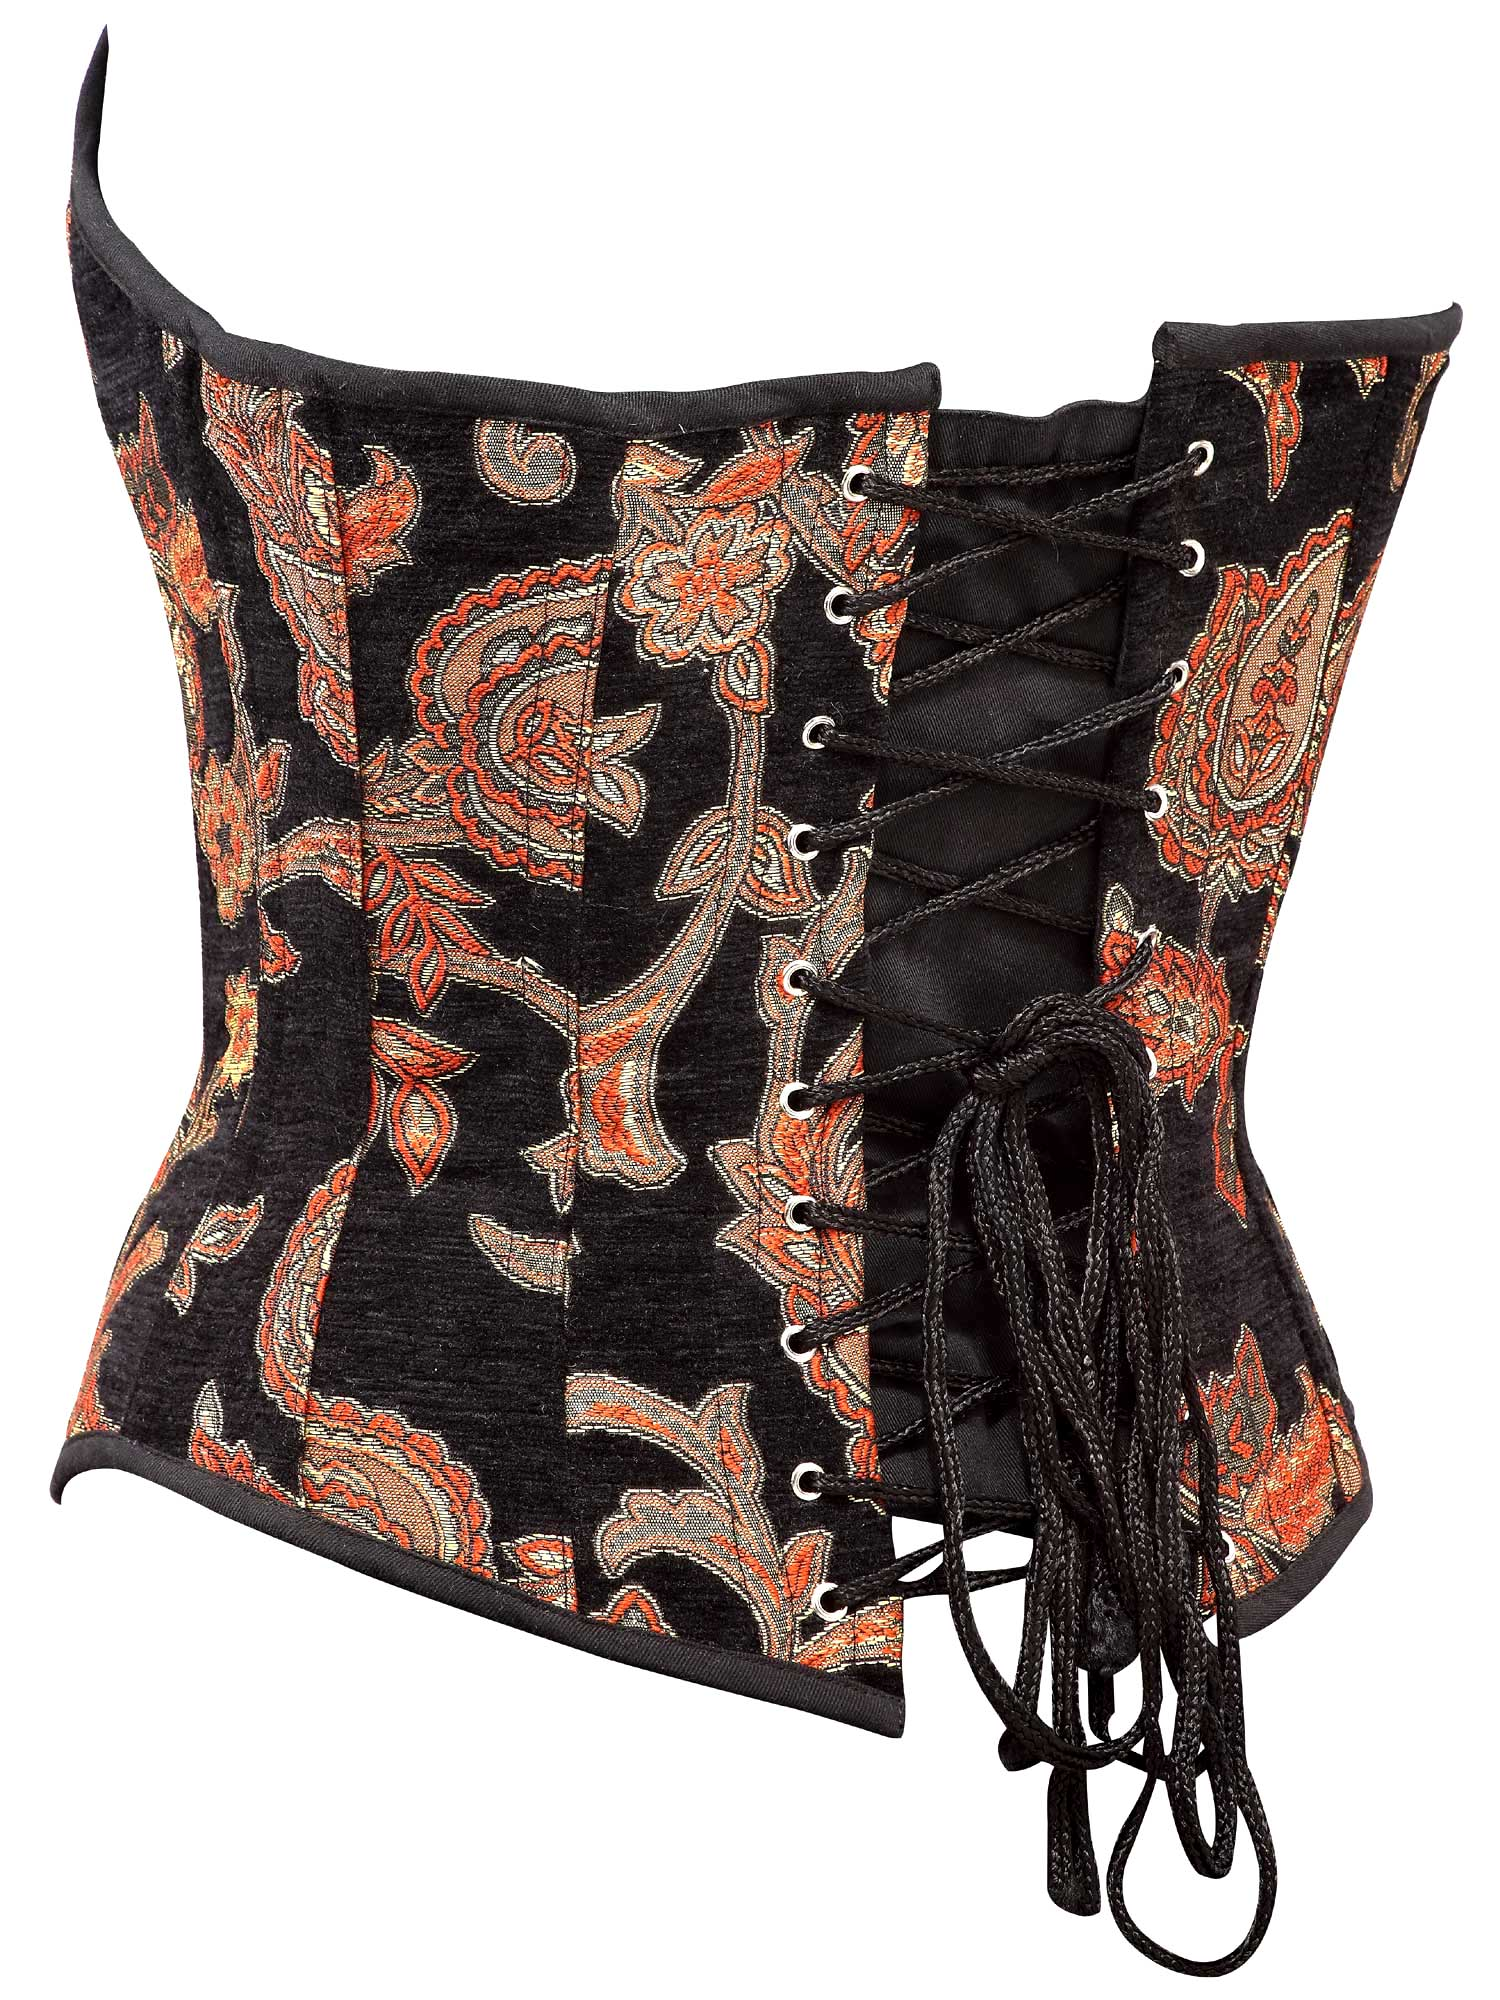 black_floral_tapestry_fabric_steel_boning_corset_waist_cincher_bustier_bustiers_and_corsets_3.jpg